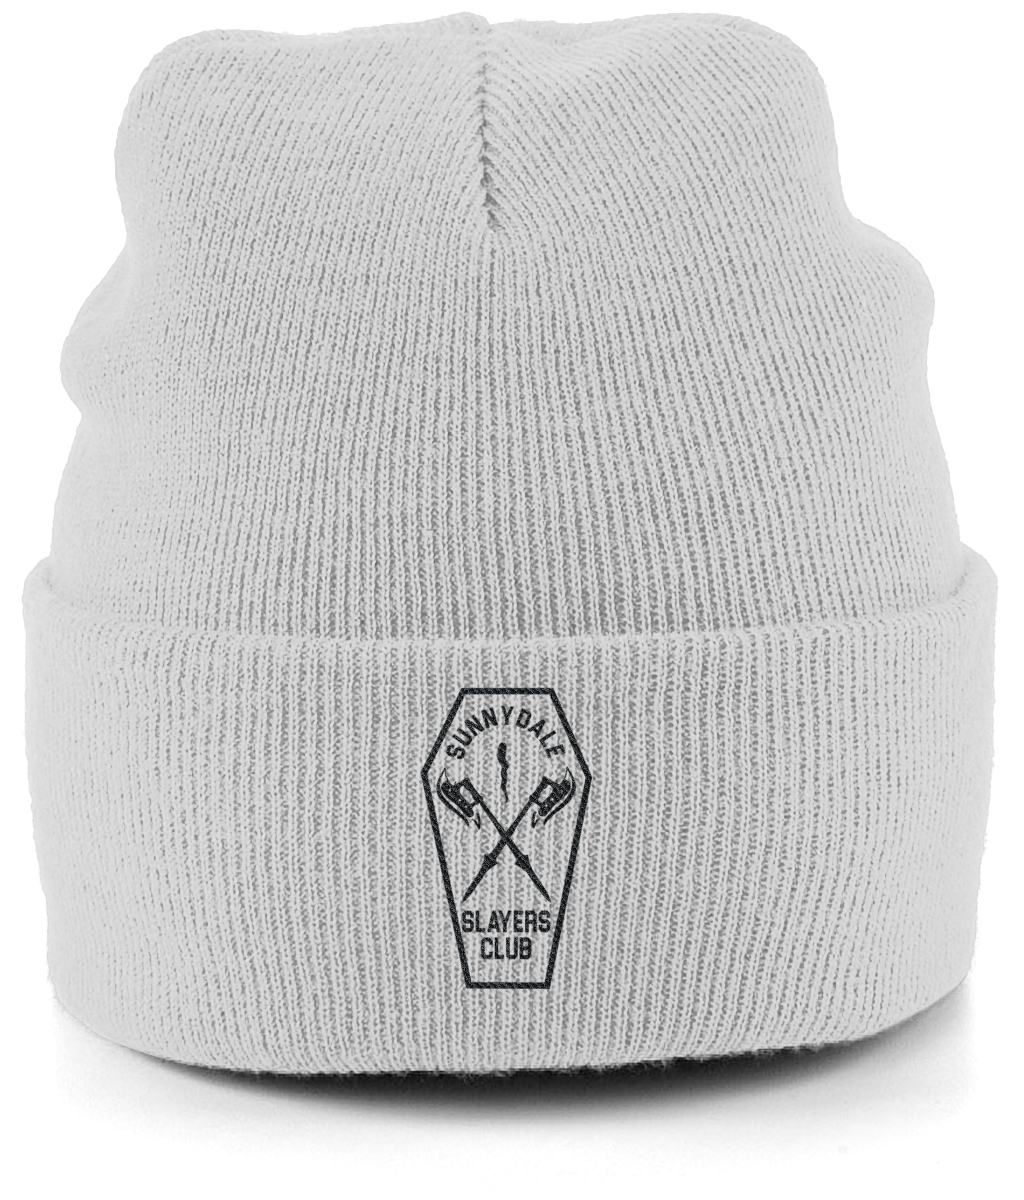 Sunnydale Slayers Club Cuffed Beanie